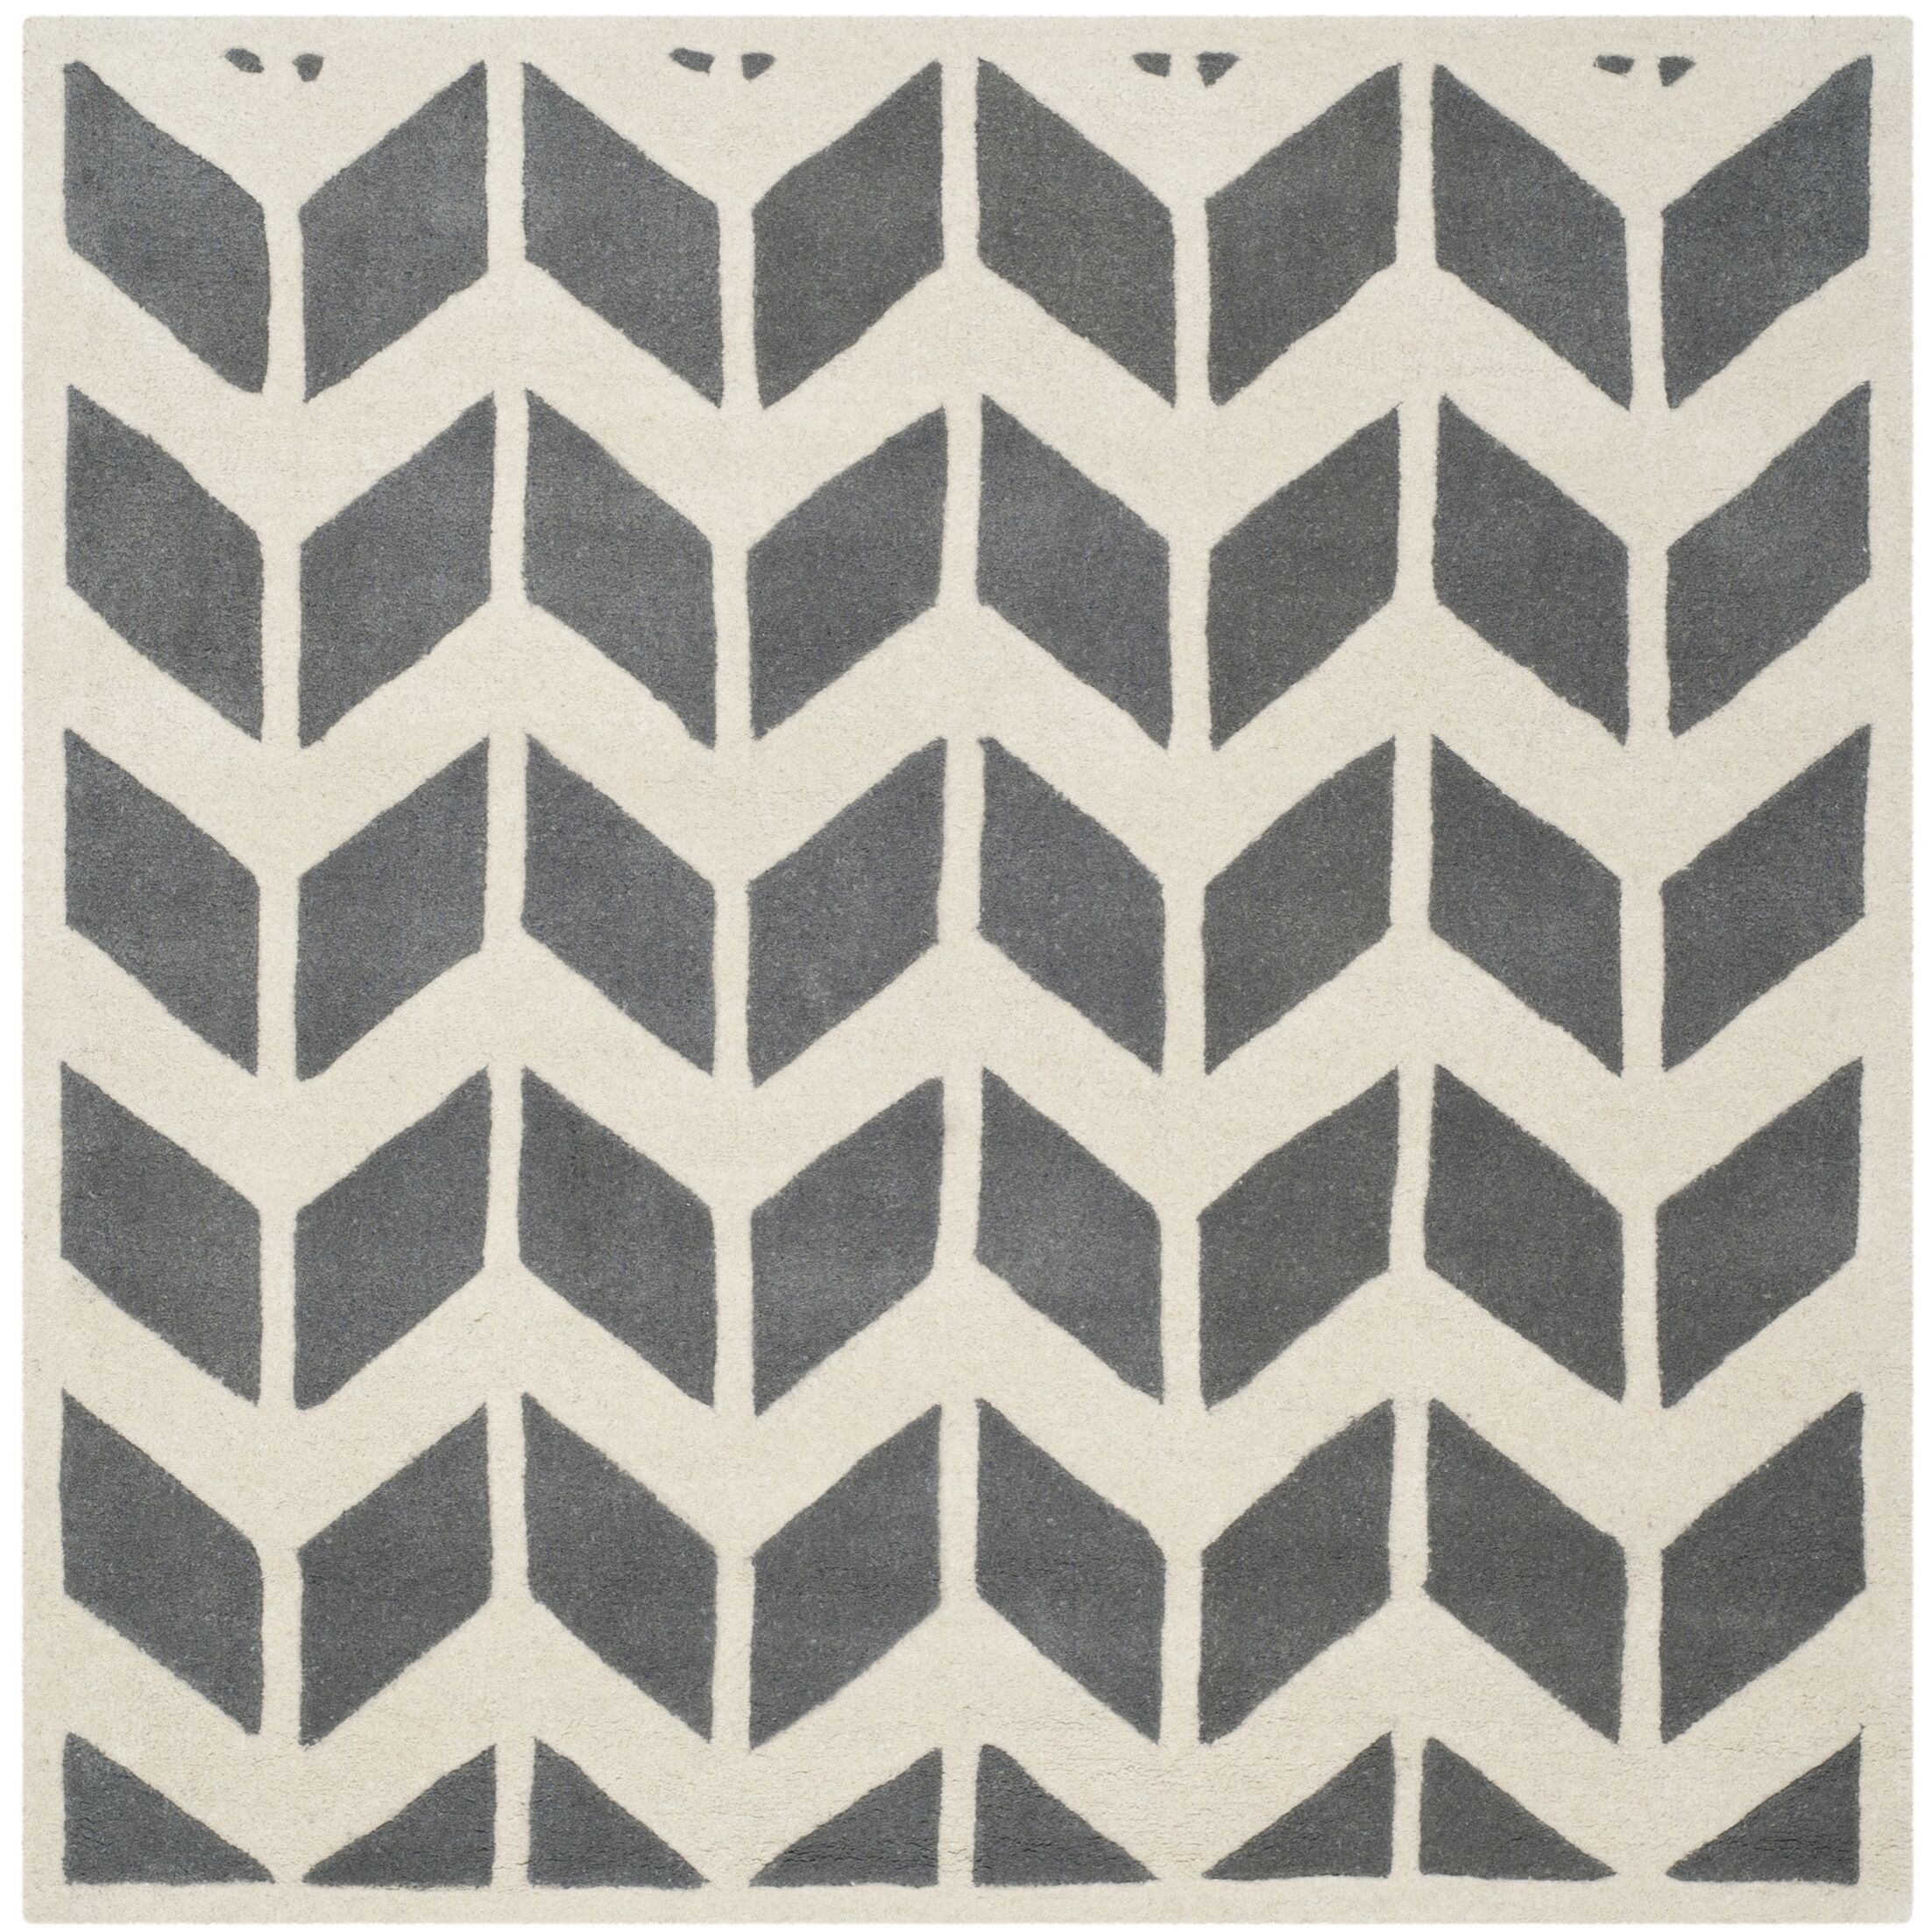 Wilkin Hand-Tufted Wool Dark Gray/Ivory Area Rug Rug Size: Square 7'